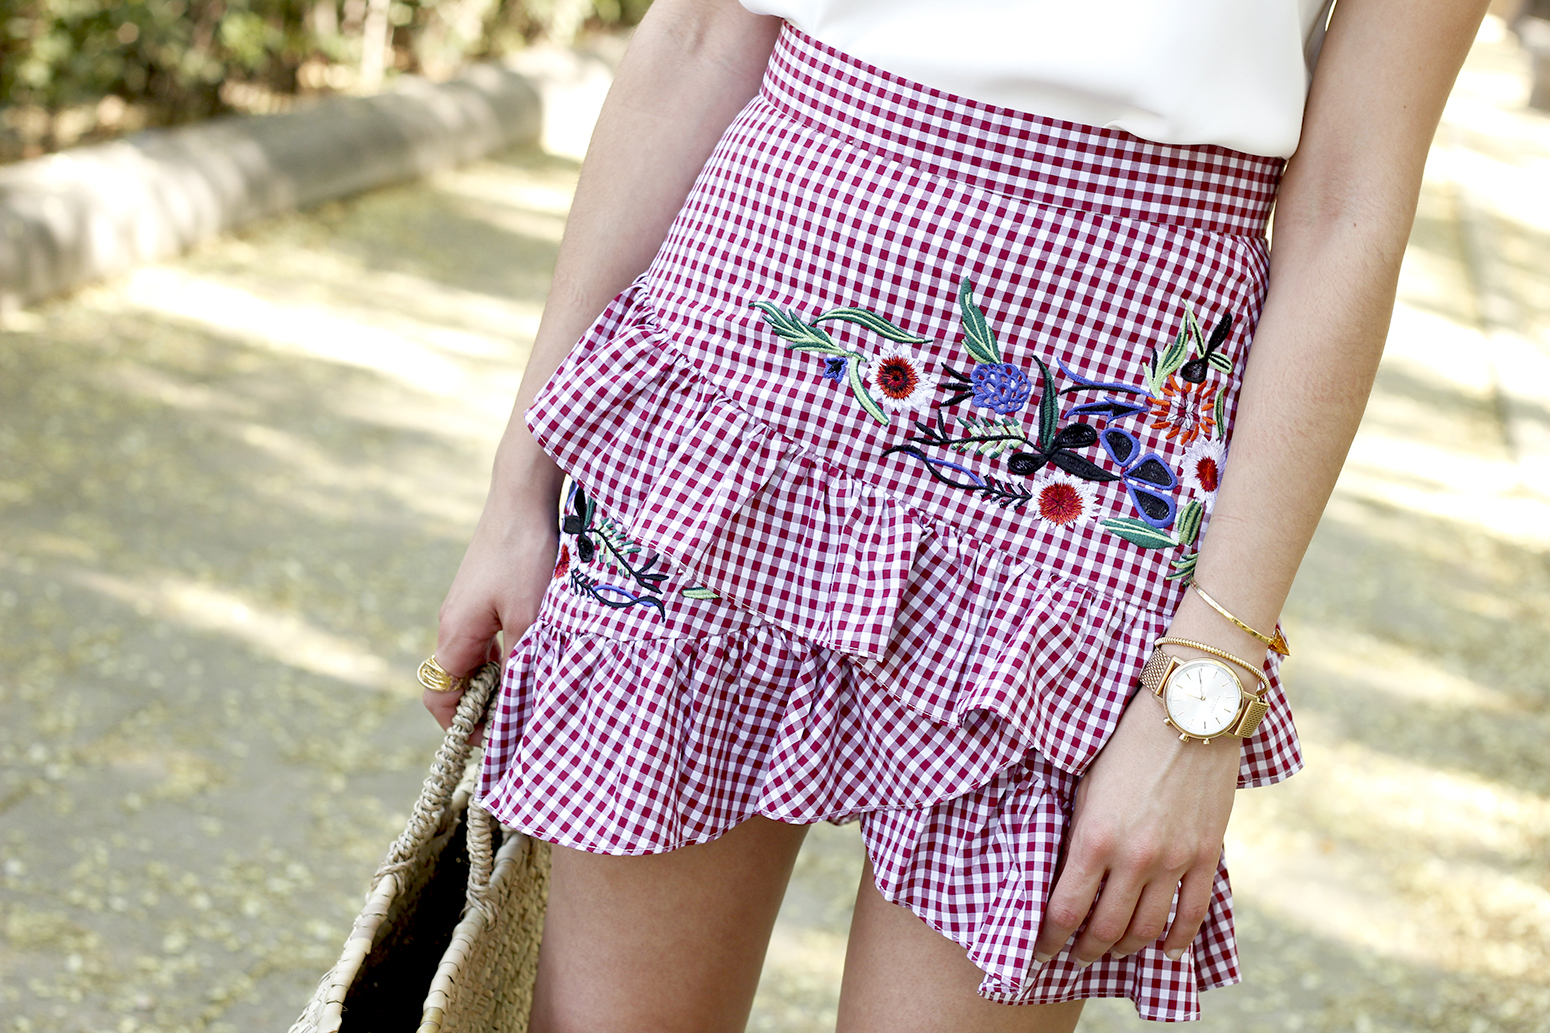 Vichy skirt with embroidered flowers rafia bag heels summer outfit style15